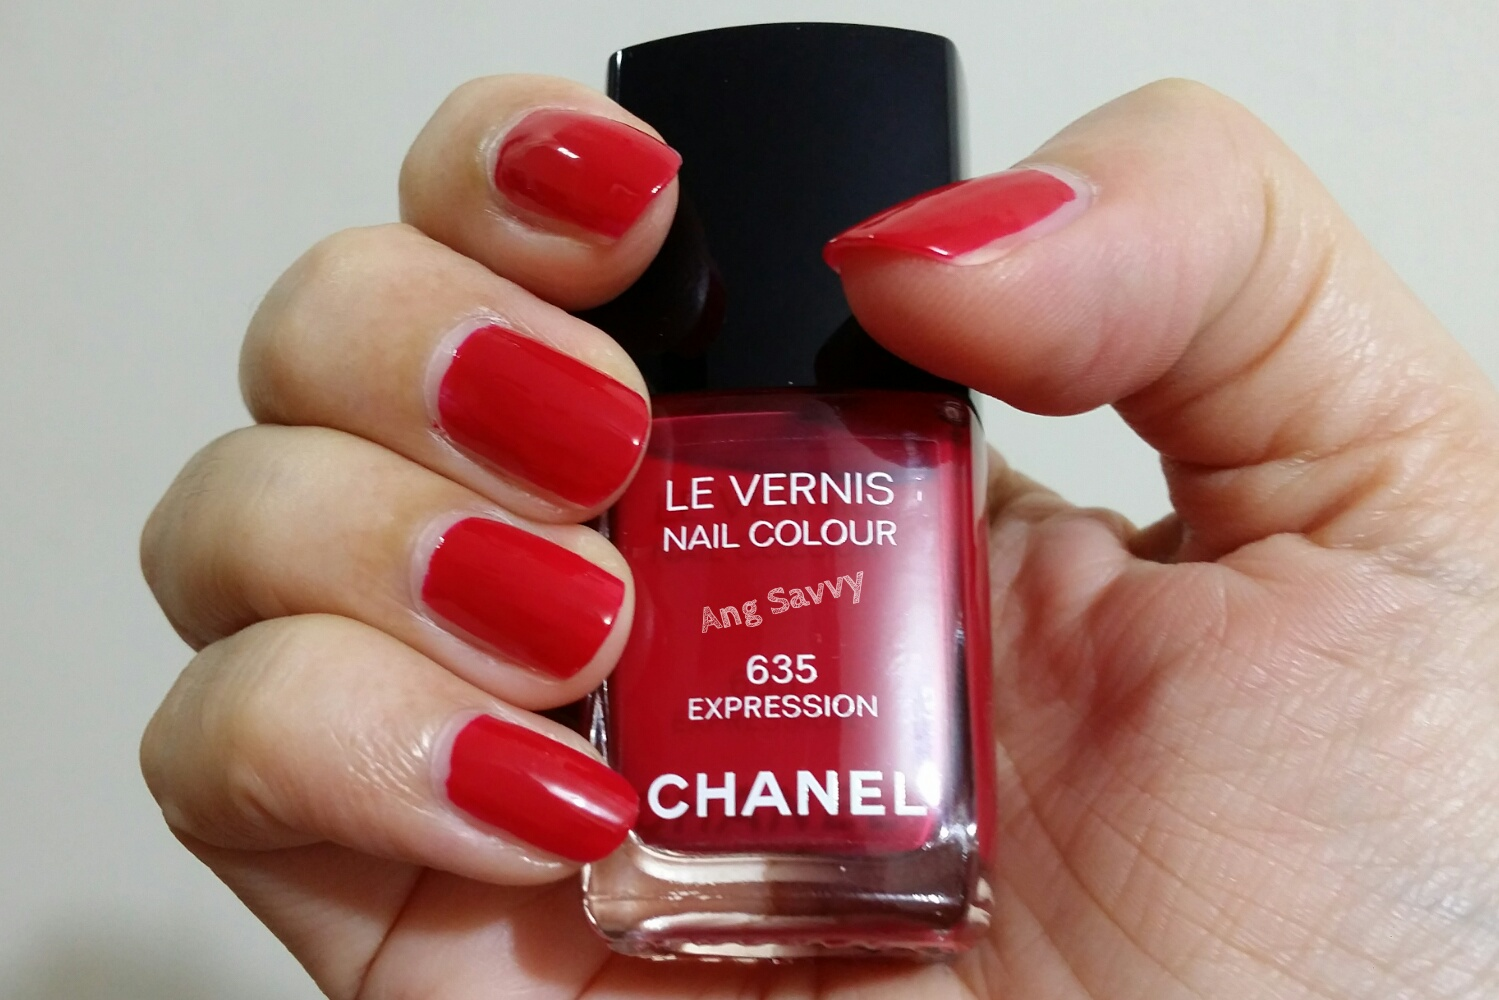 Chanel Le Vernis Nail Colour 635 Expression